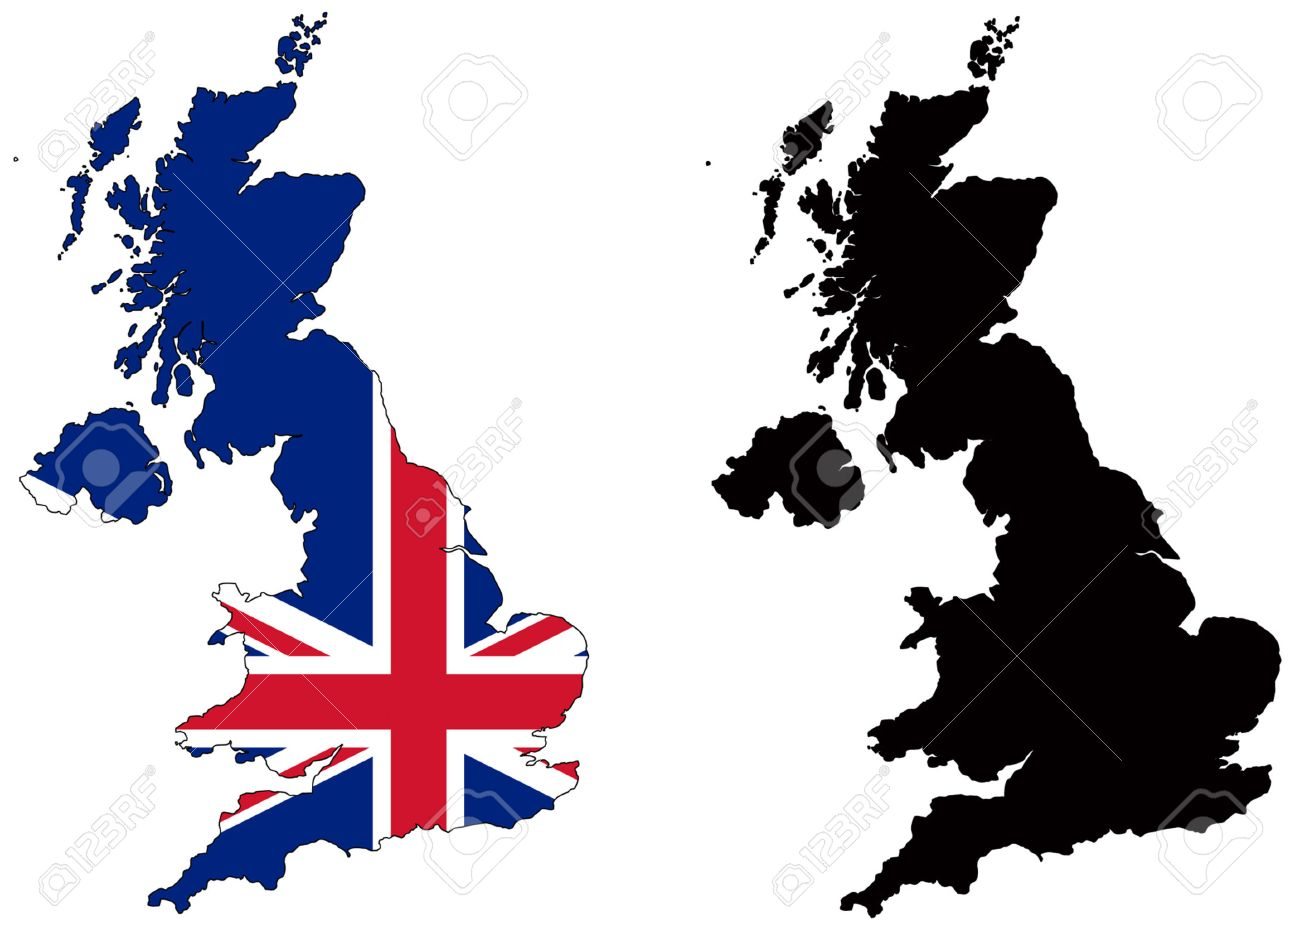 england map stock photos u0026 pictures royalty free england map